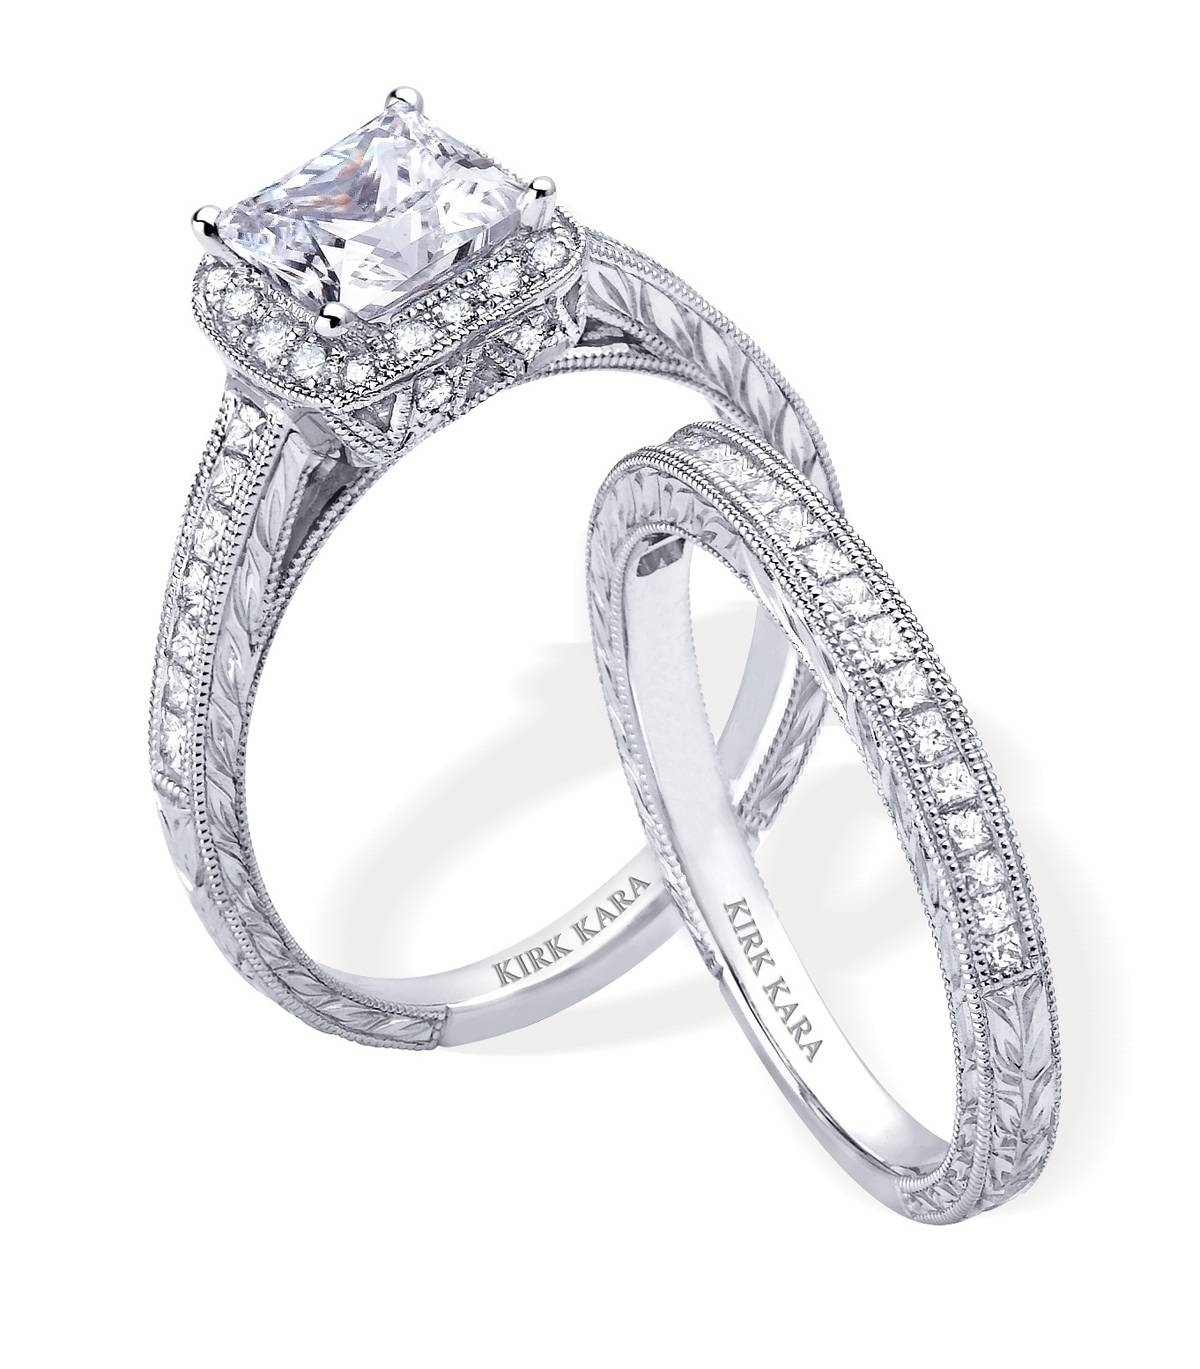 rows diamonds wedding princess cut of ring set with supreme engagement platinum product